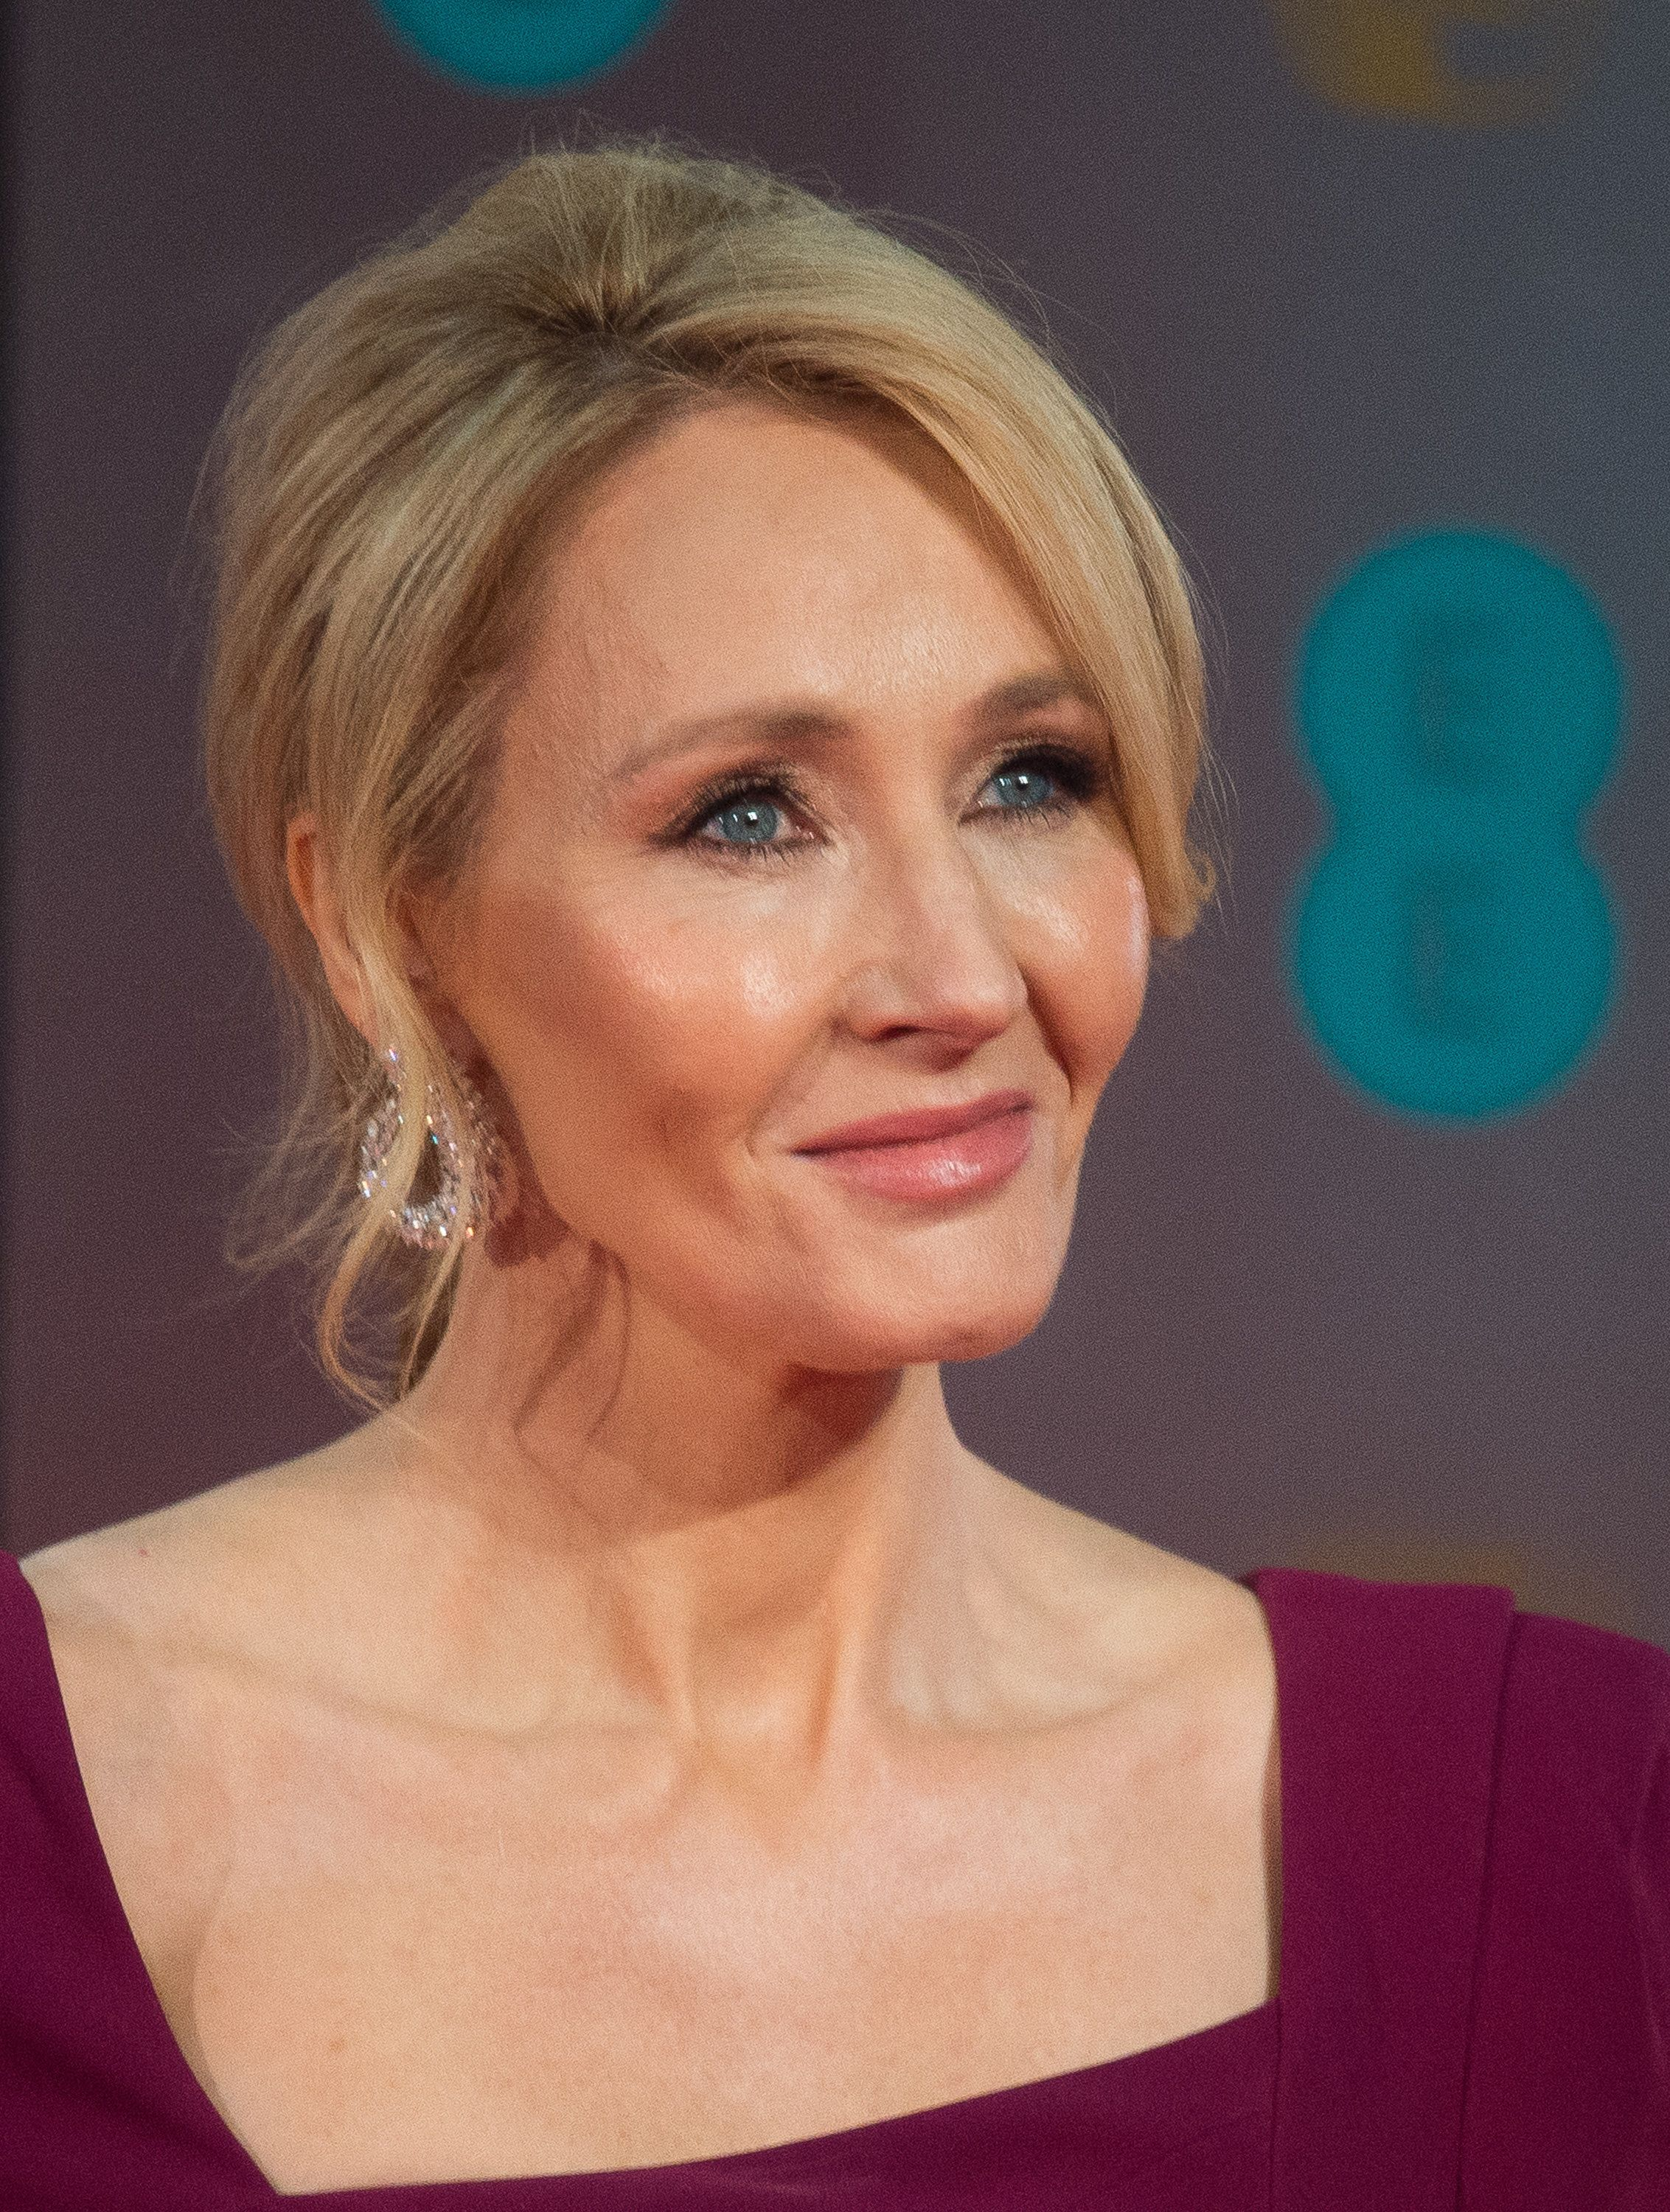 J.K. Rowling Sends Message To 'Harry Potter' Fans On 20th Anniversary Of 'Philosopher's Stone'